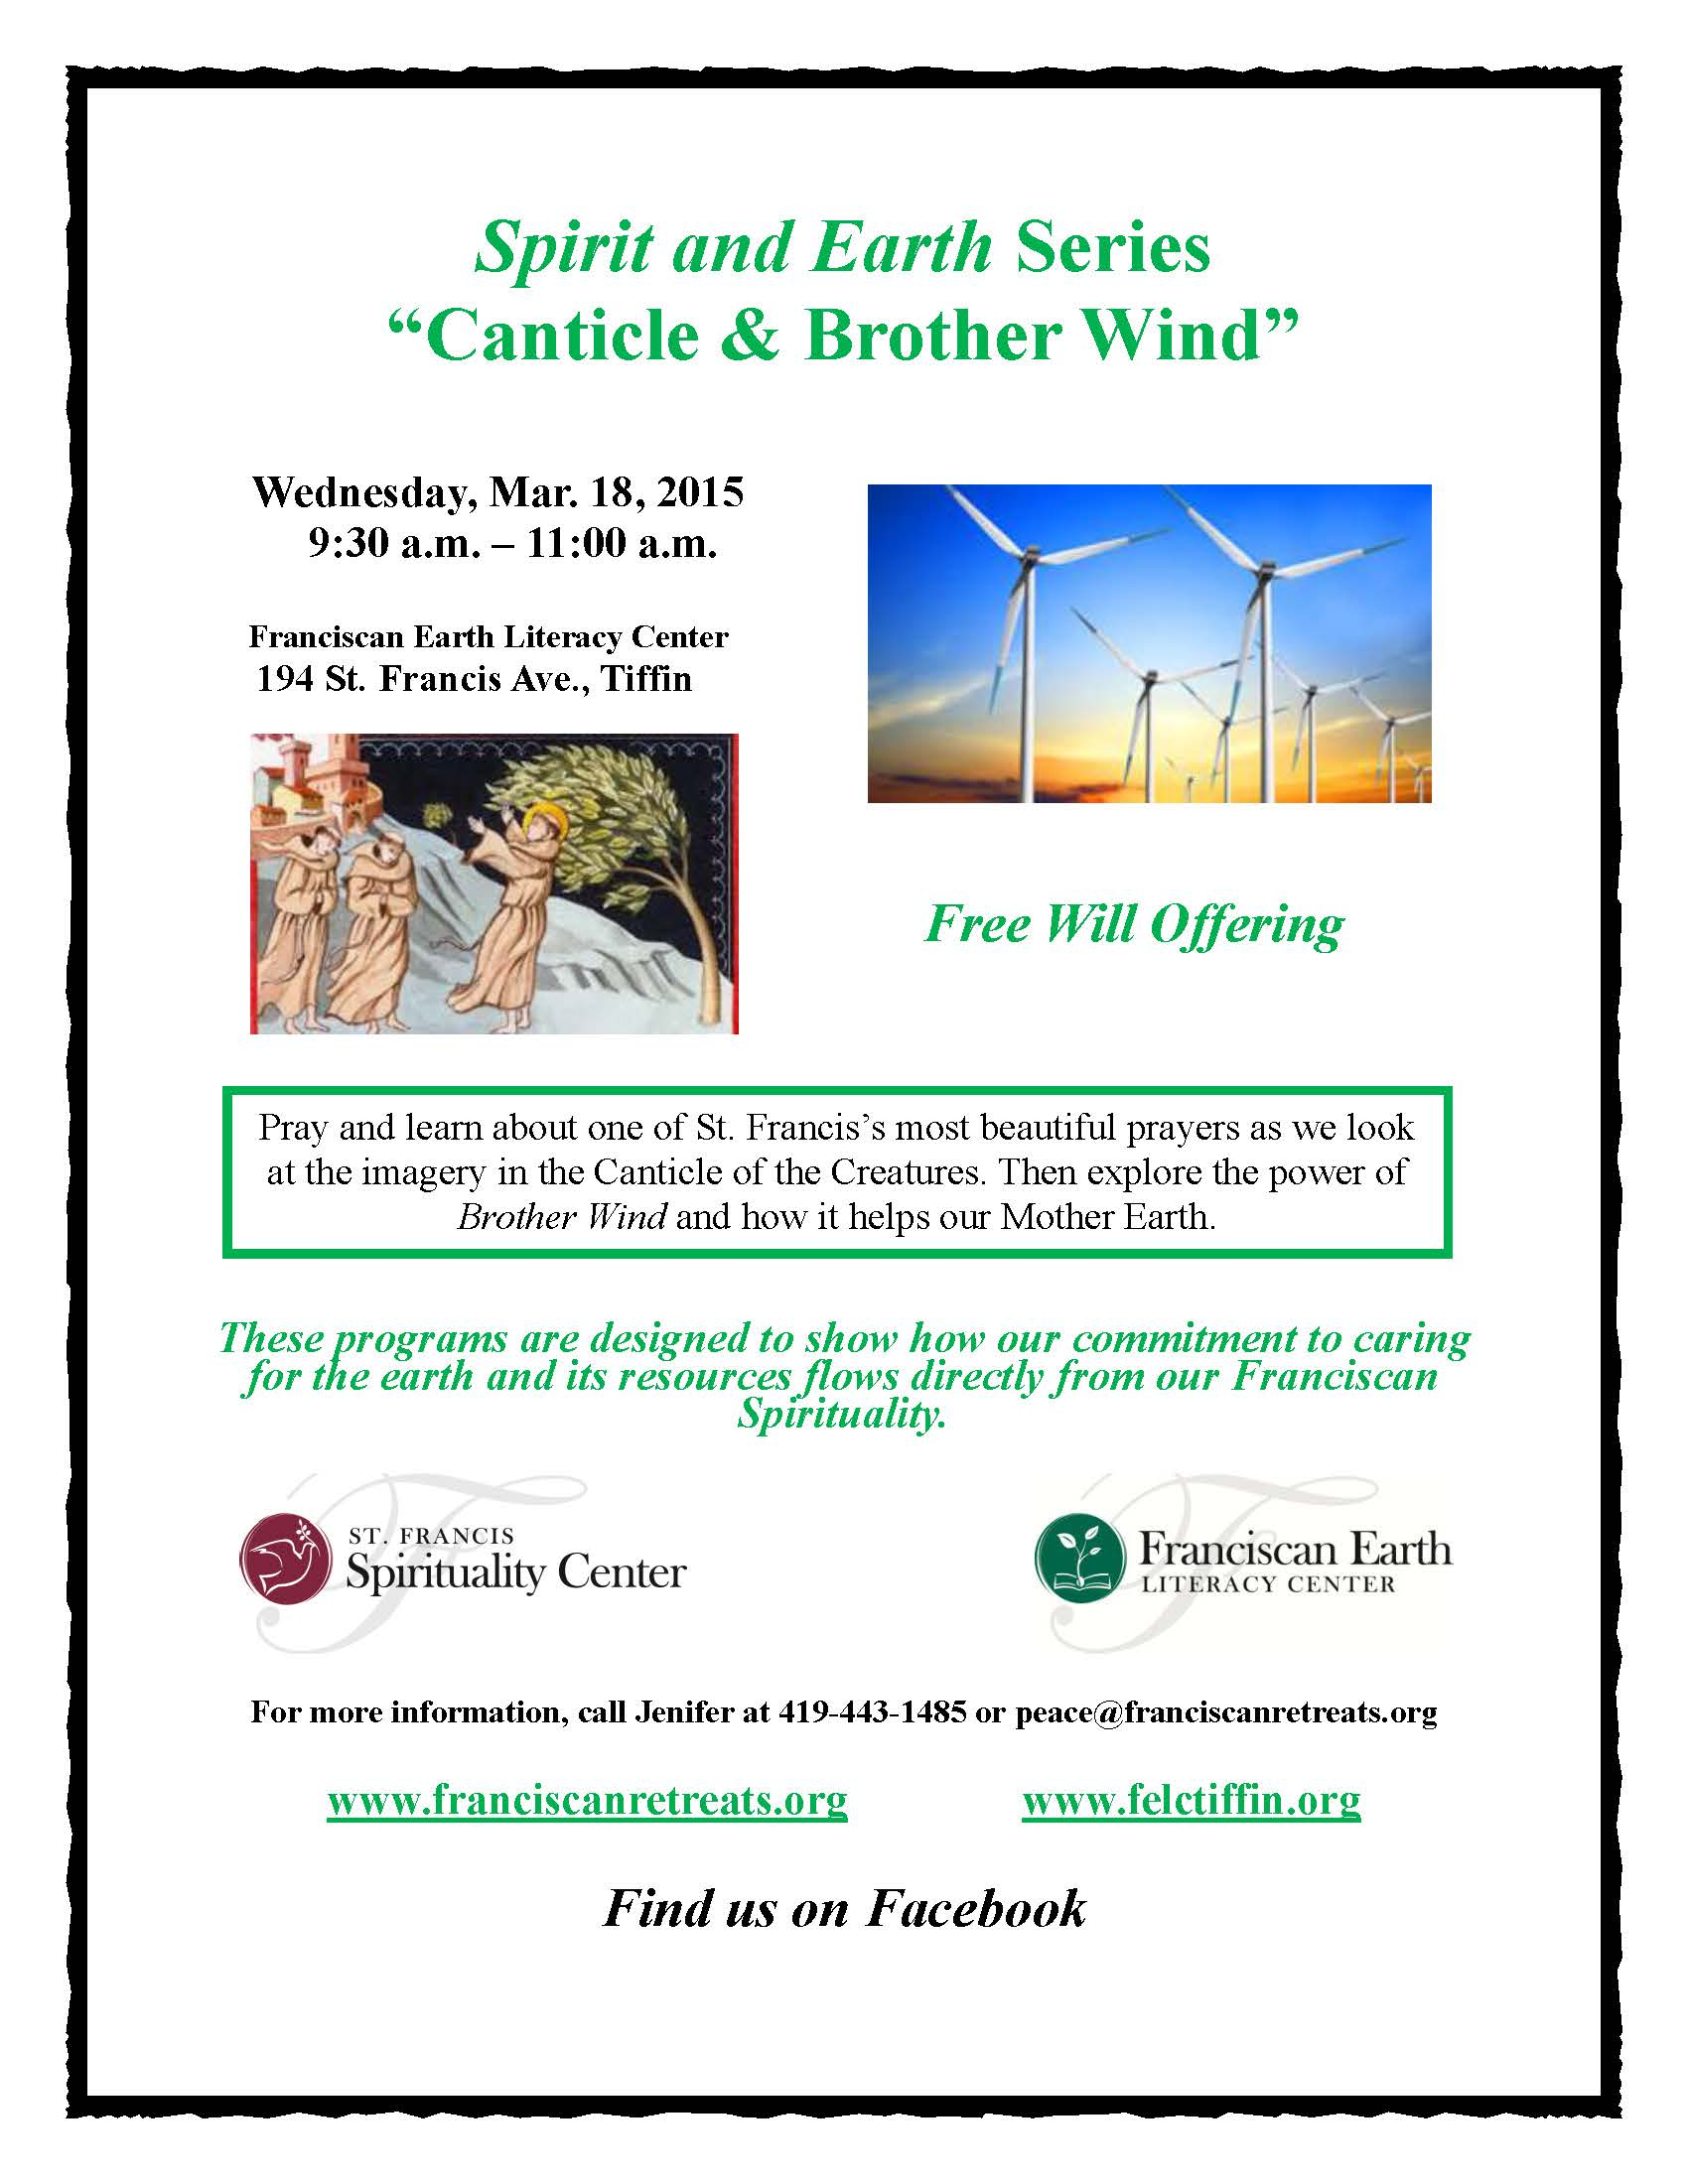 Spirit and Earth Series Flyer - Canticle & Brother Wind